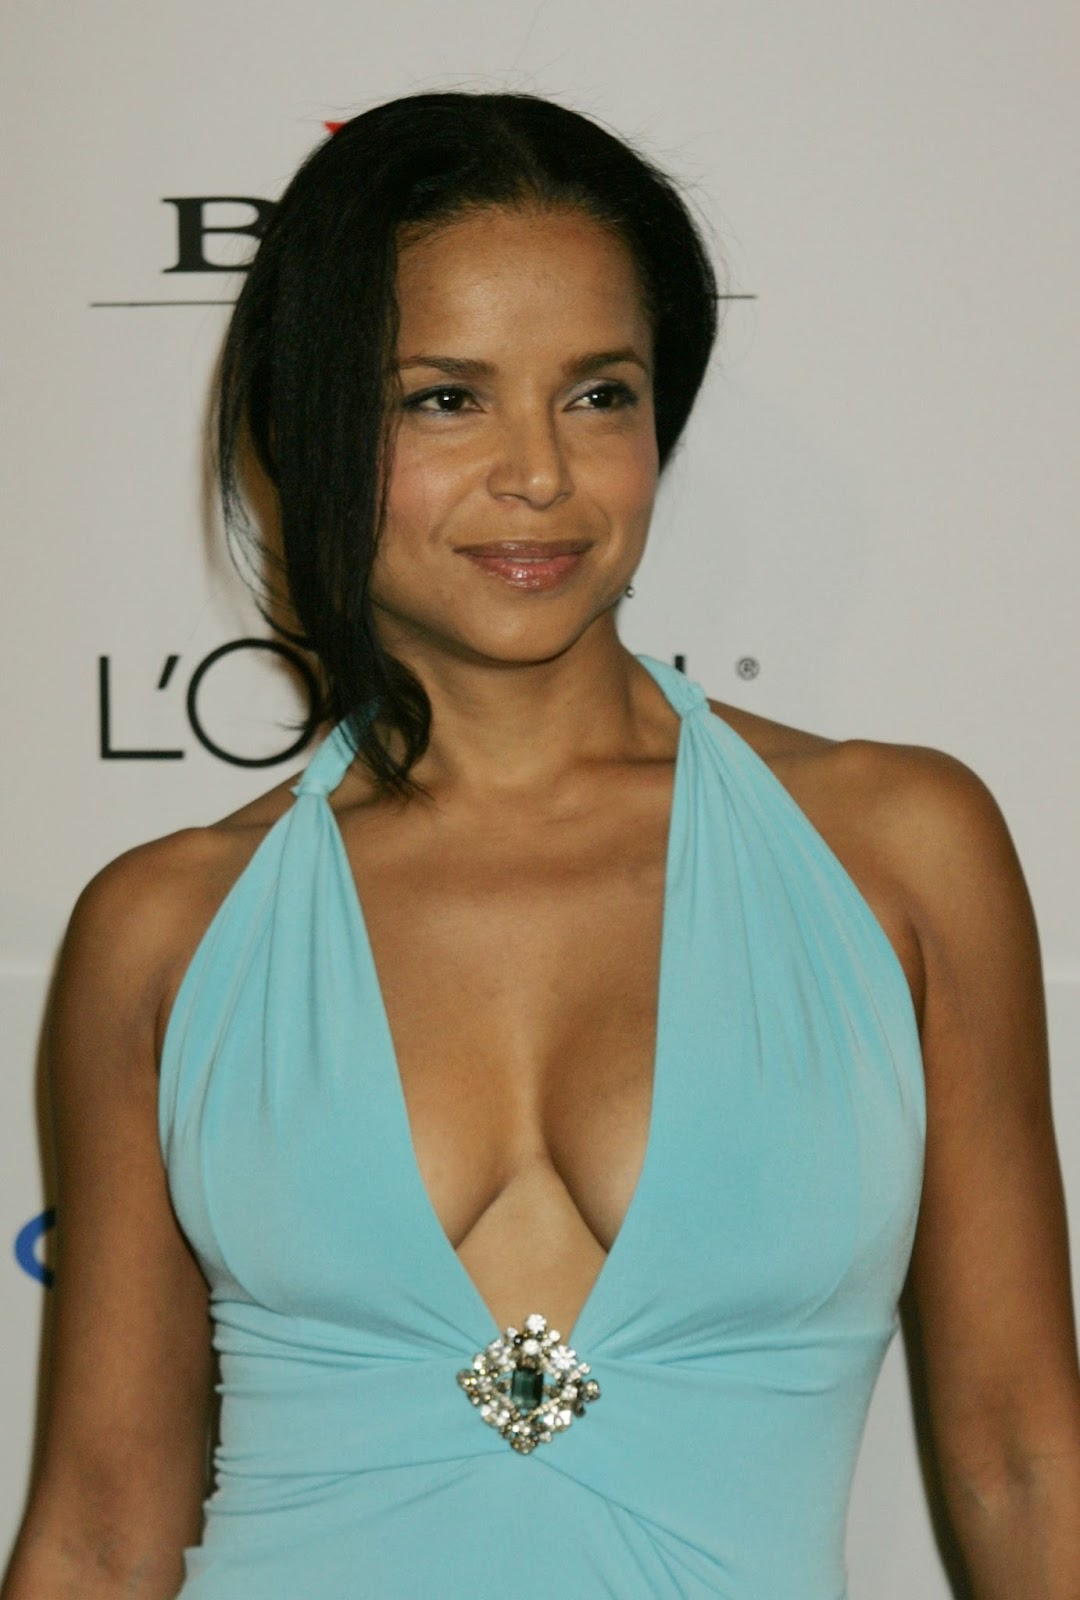 Boring. Victoria rowell nude pics remarkable, very